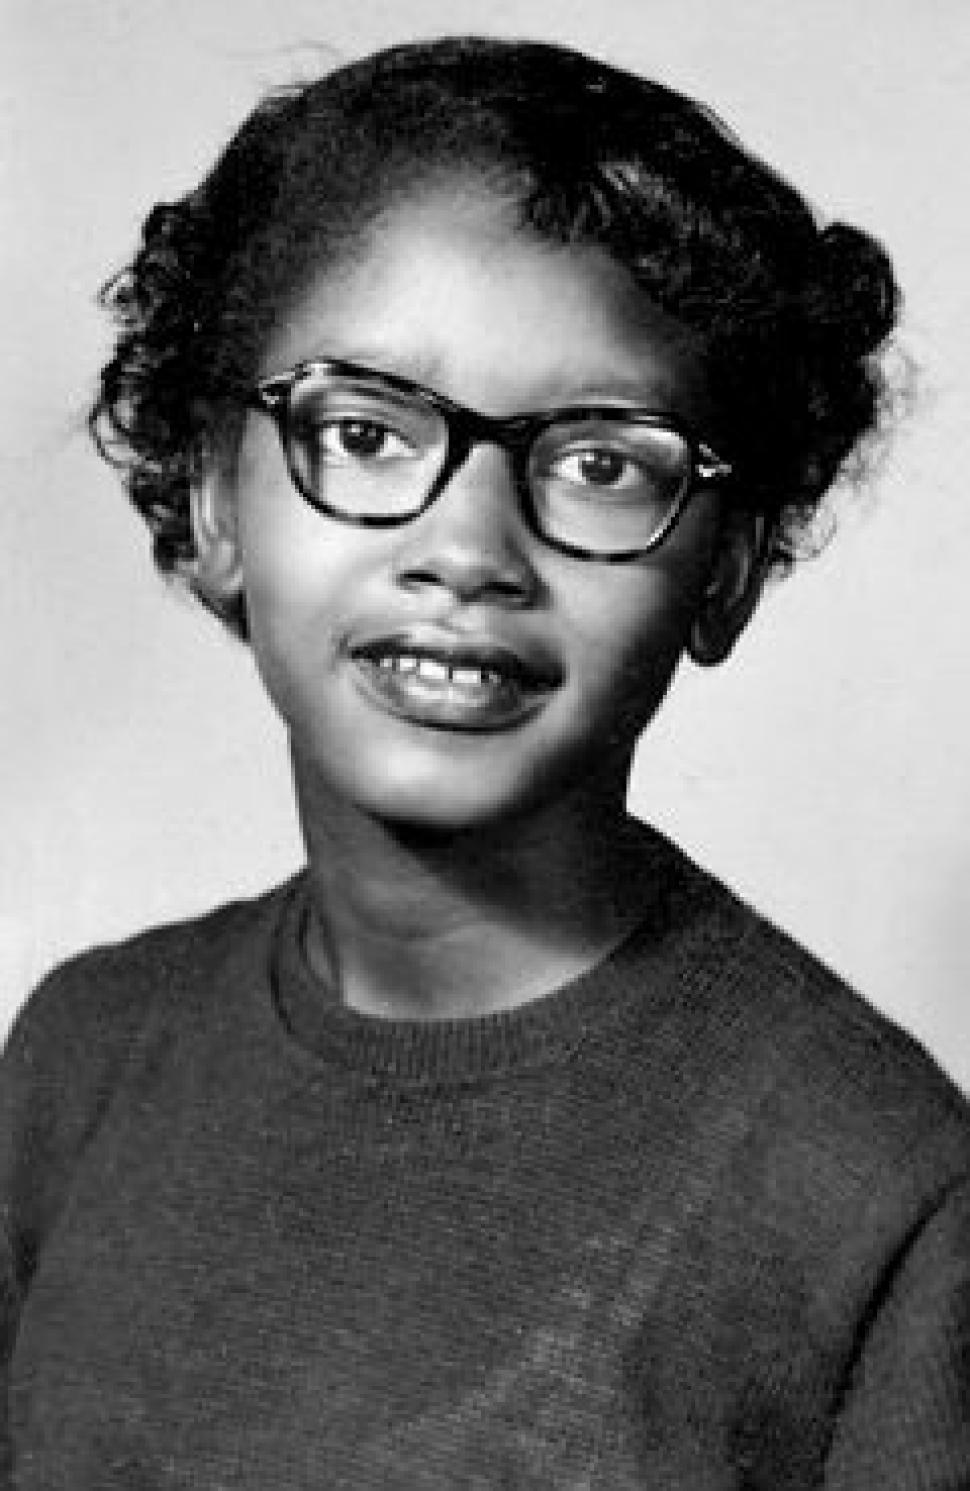 A black and white head shot of Claudette Colvin. She is wearing a plain shirt, glasses, and has short curly hair.